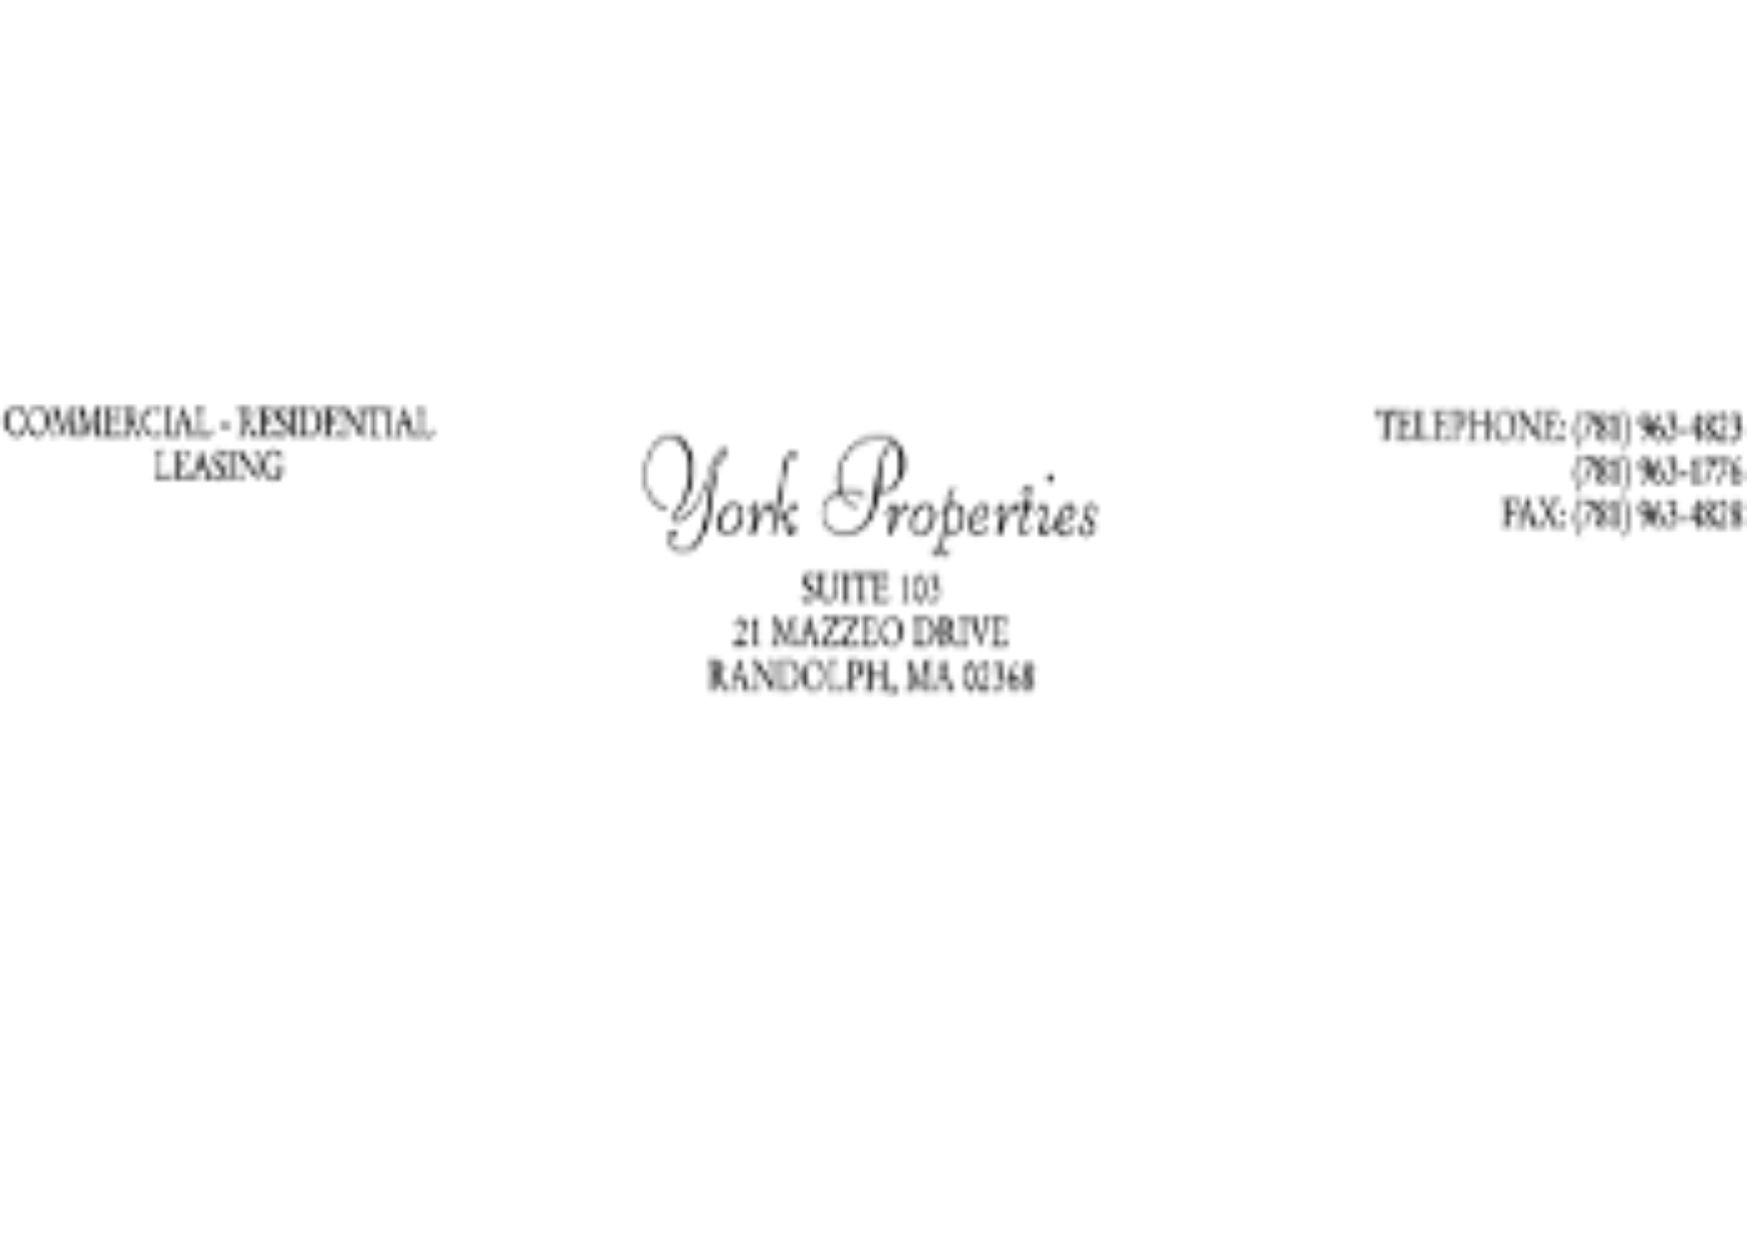 York Properties- Commercial-Residential